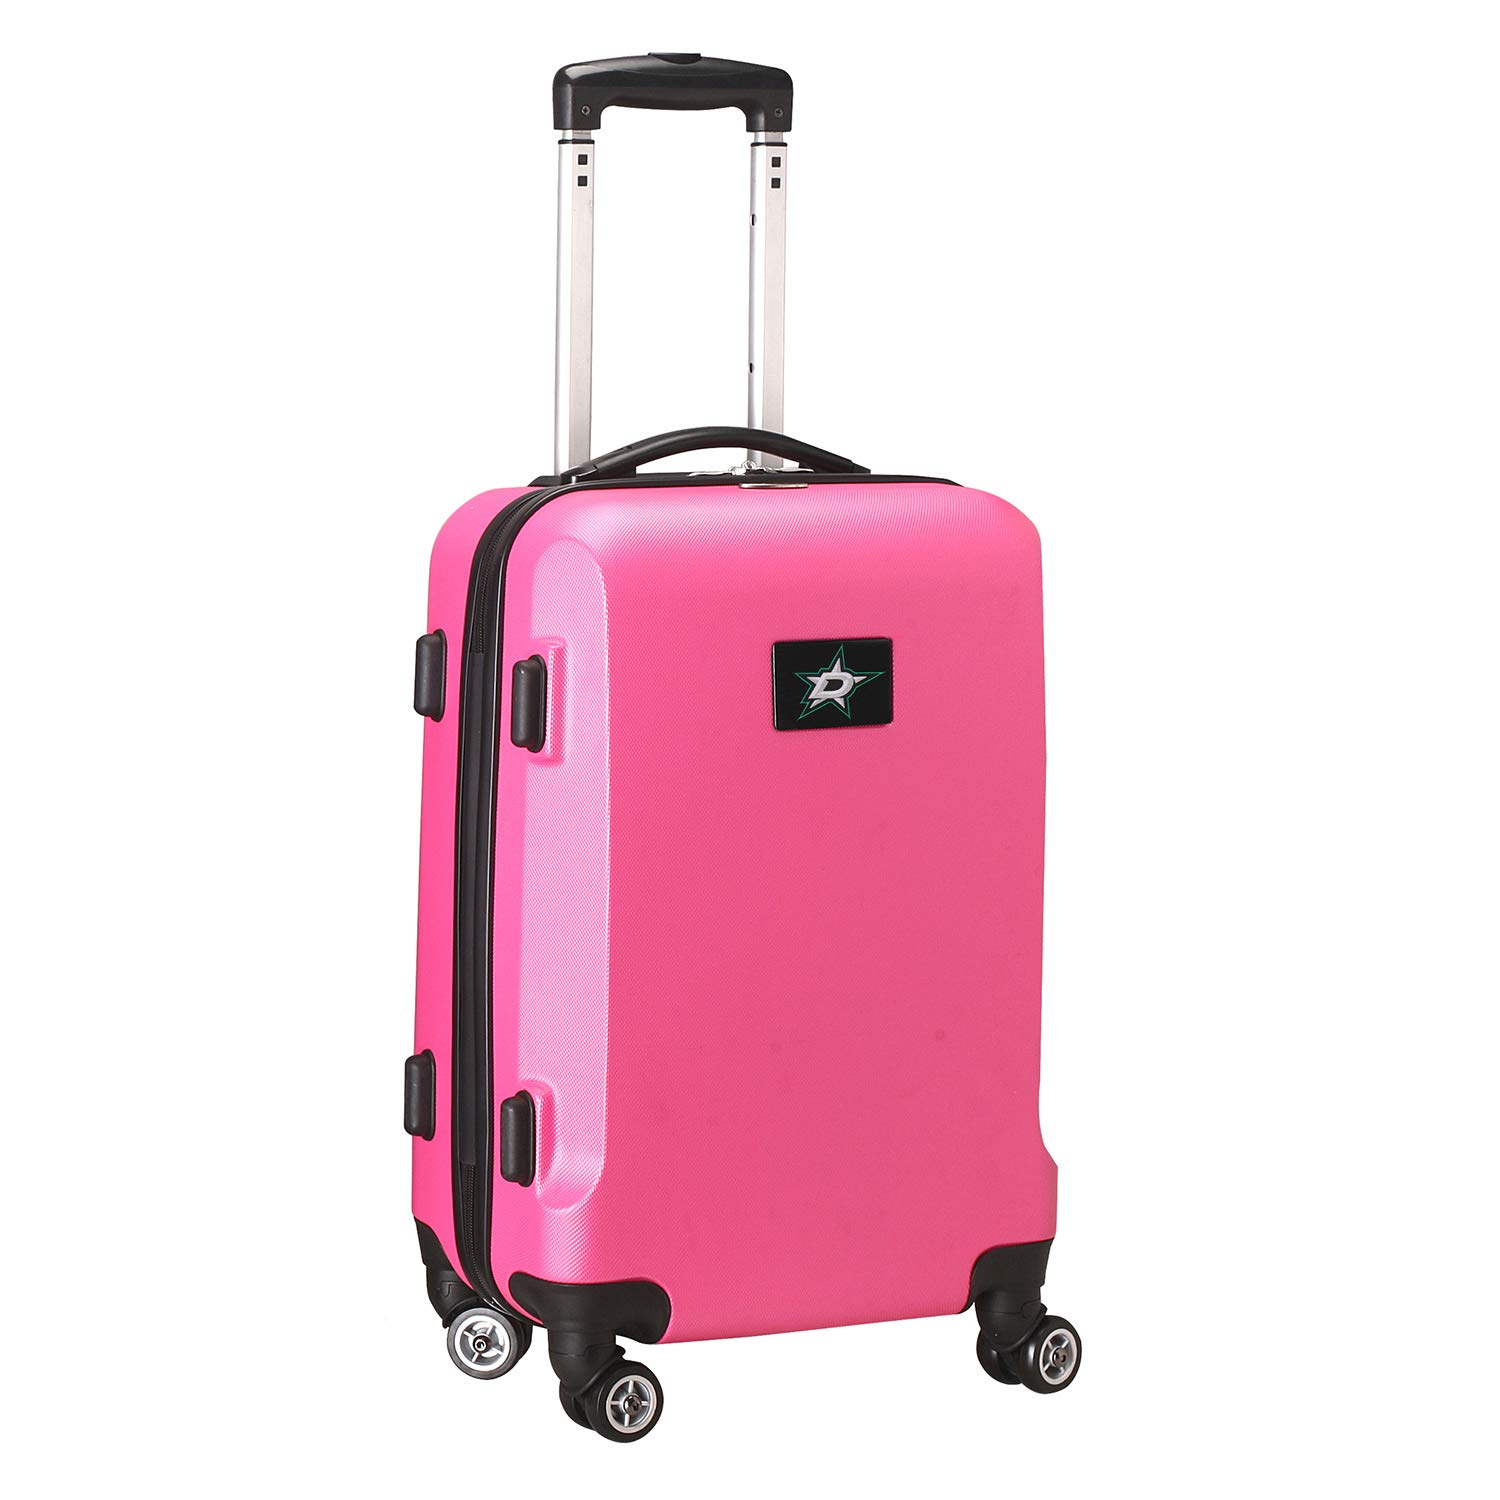 NHL Dallas Stars Carry-On Hardcase Luggage Spinner, Pink